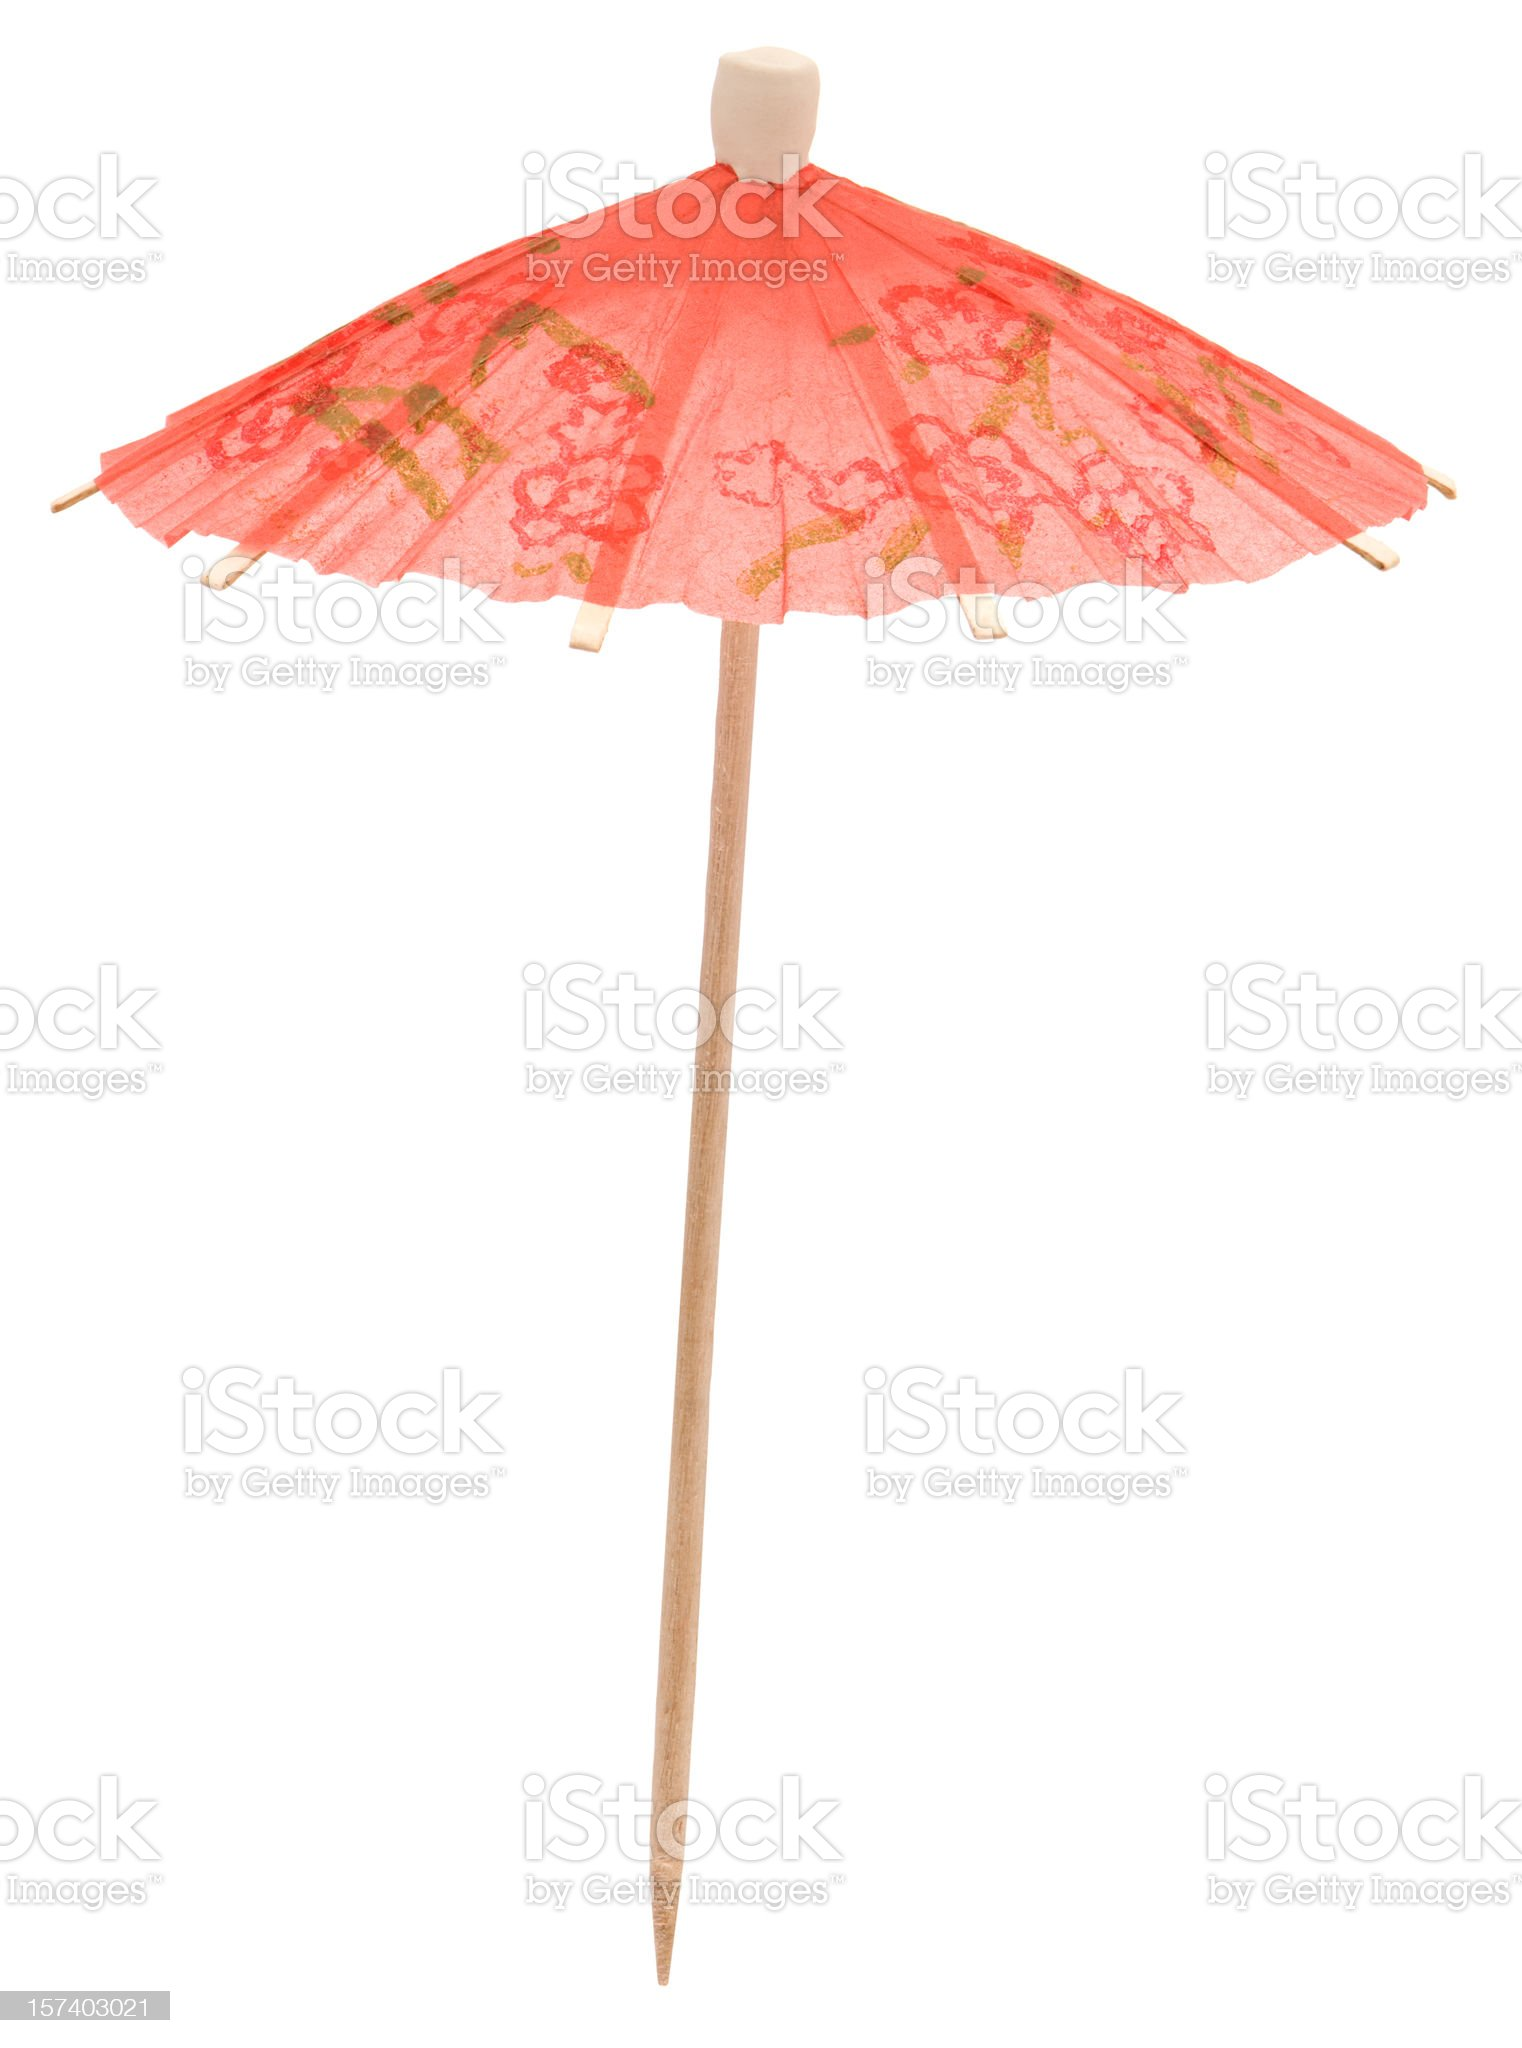 High Resolution Cocktail Umbrella royalty-free stock photo